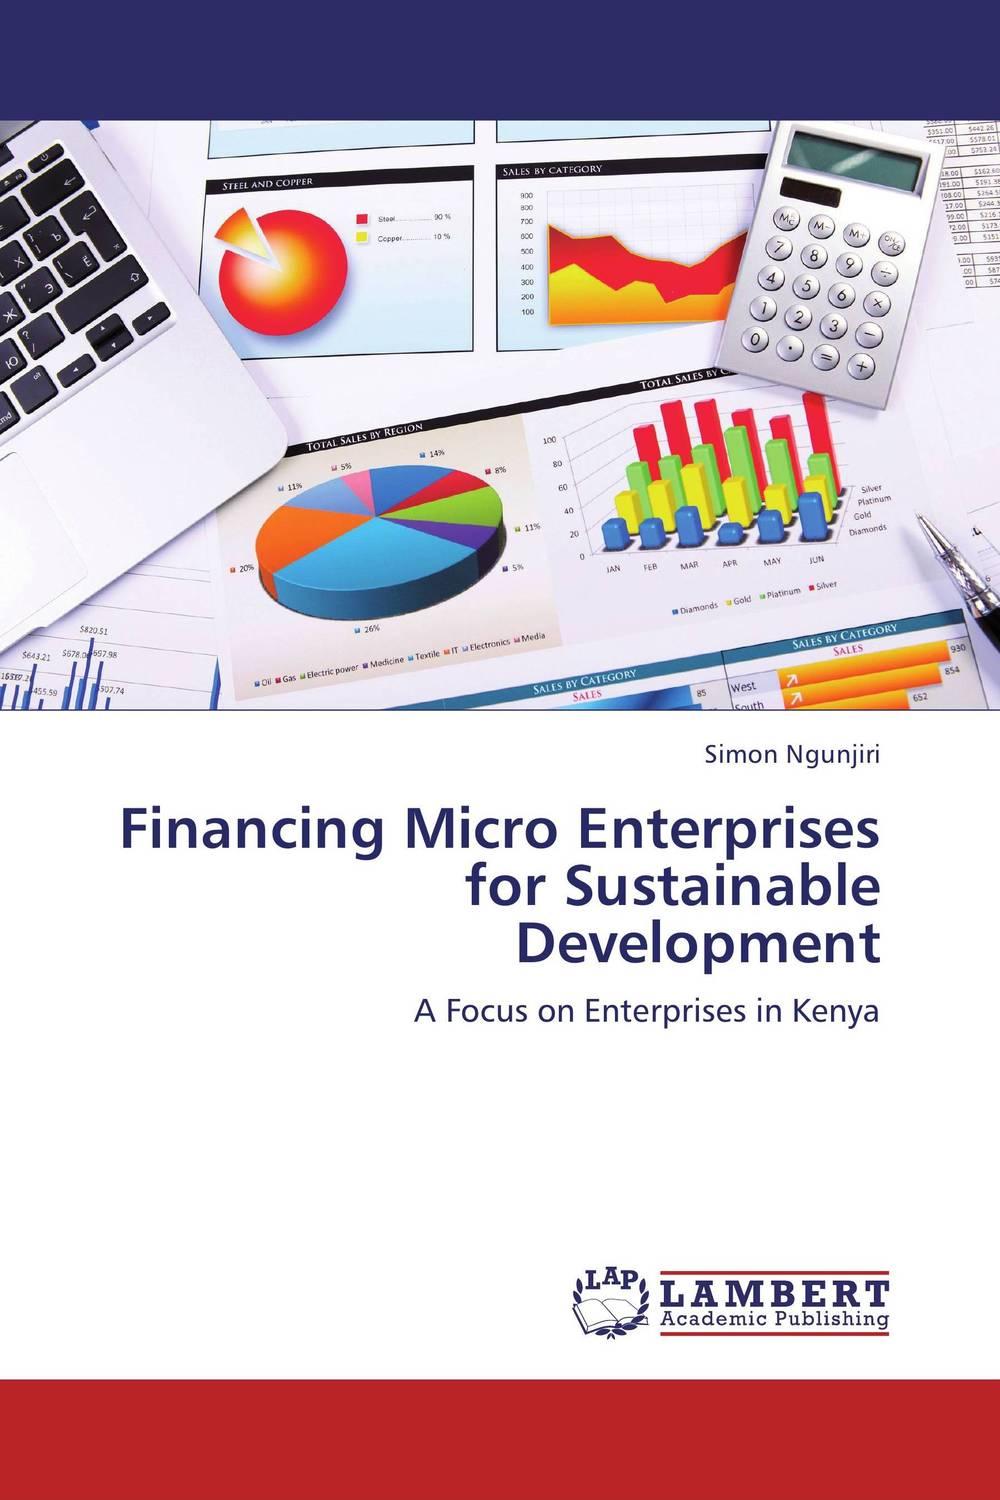 Financing Micro Enterprises for Sustainable Development jaynal ud din ahmed and mohd abdul rashid institutional finance for micro and small entreprises in india